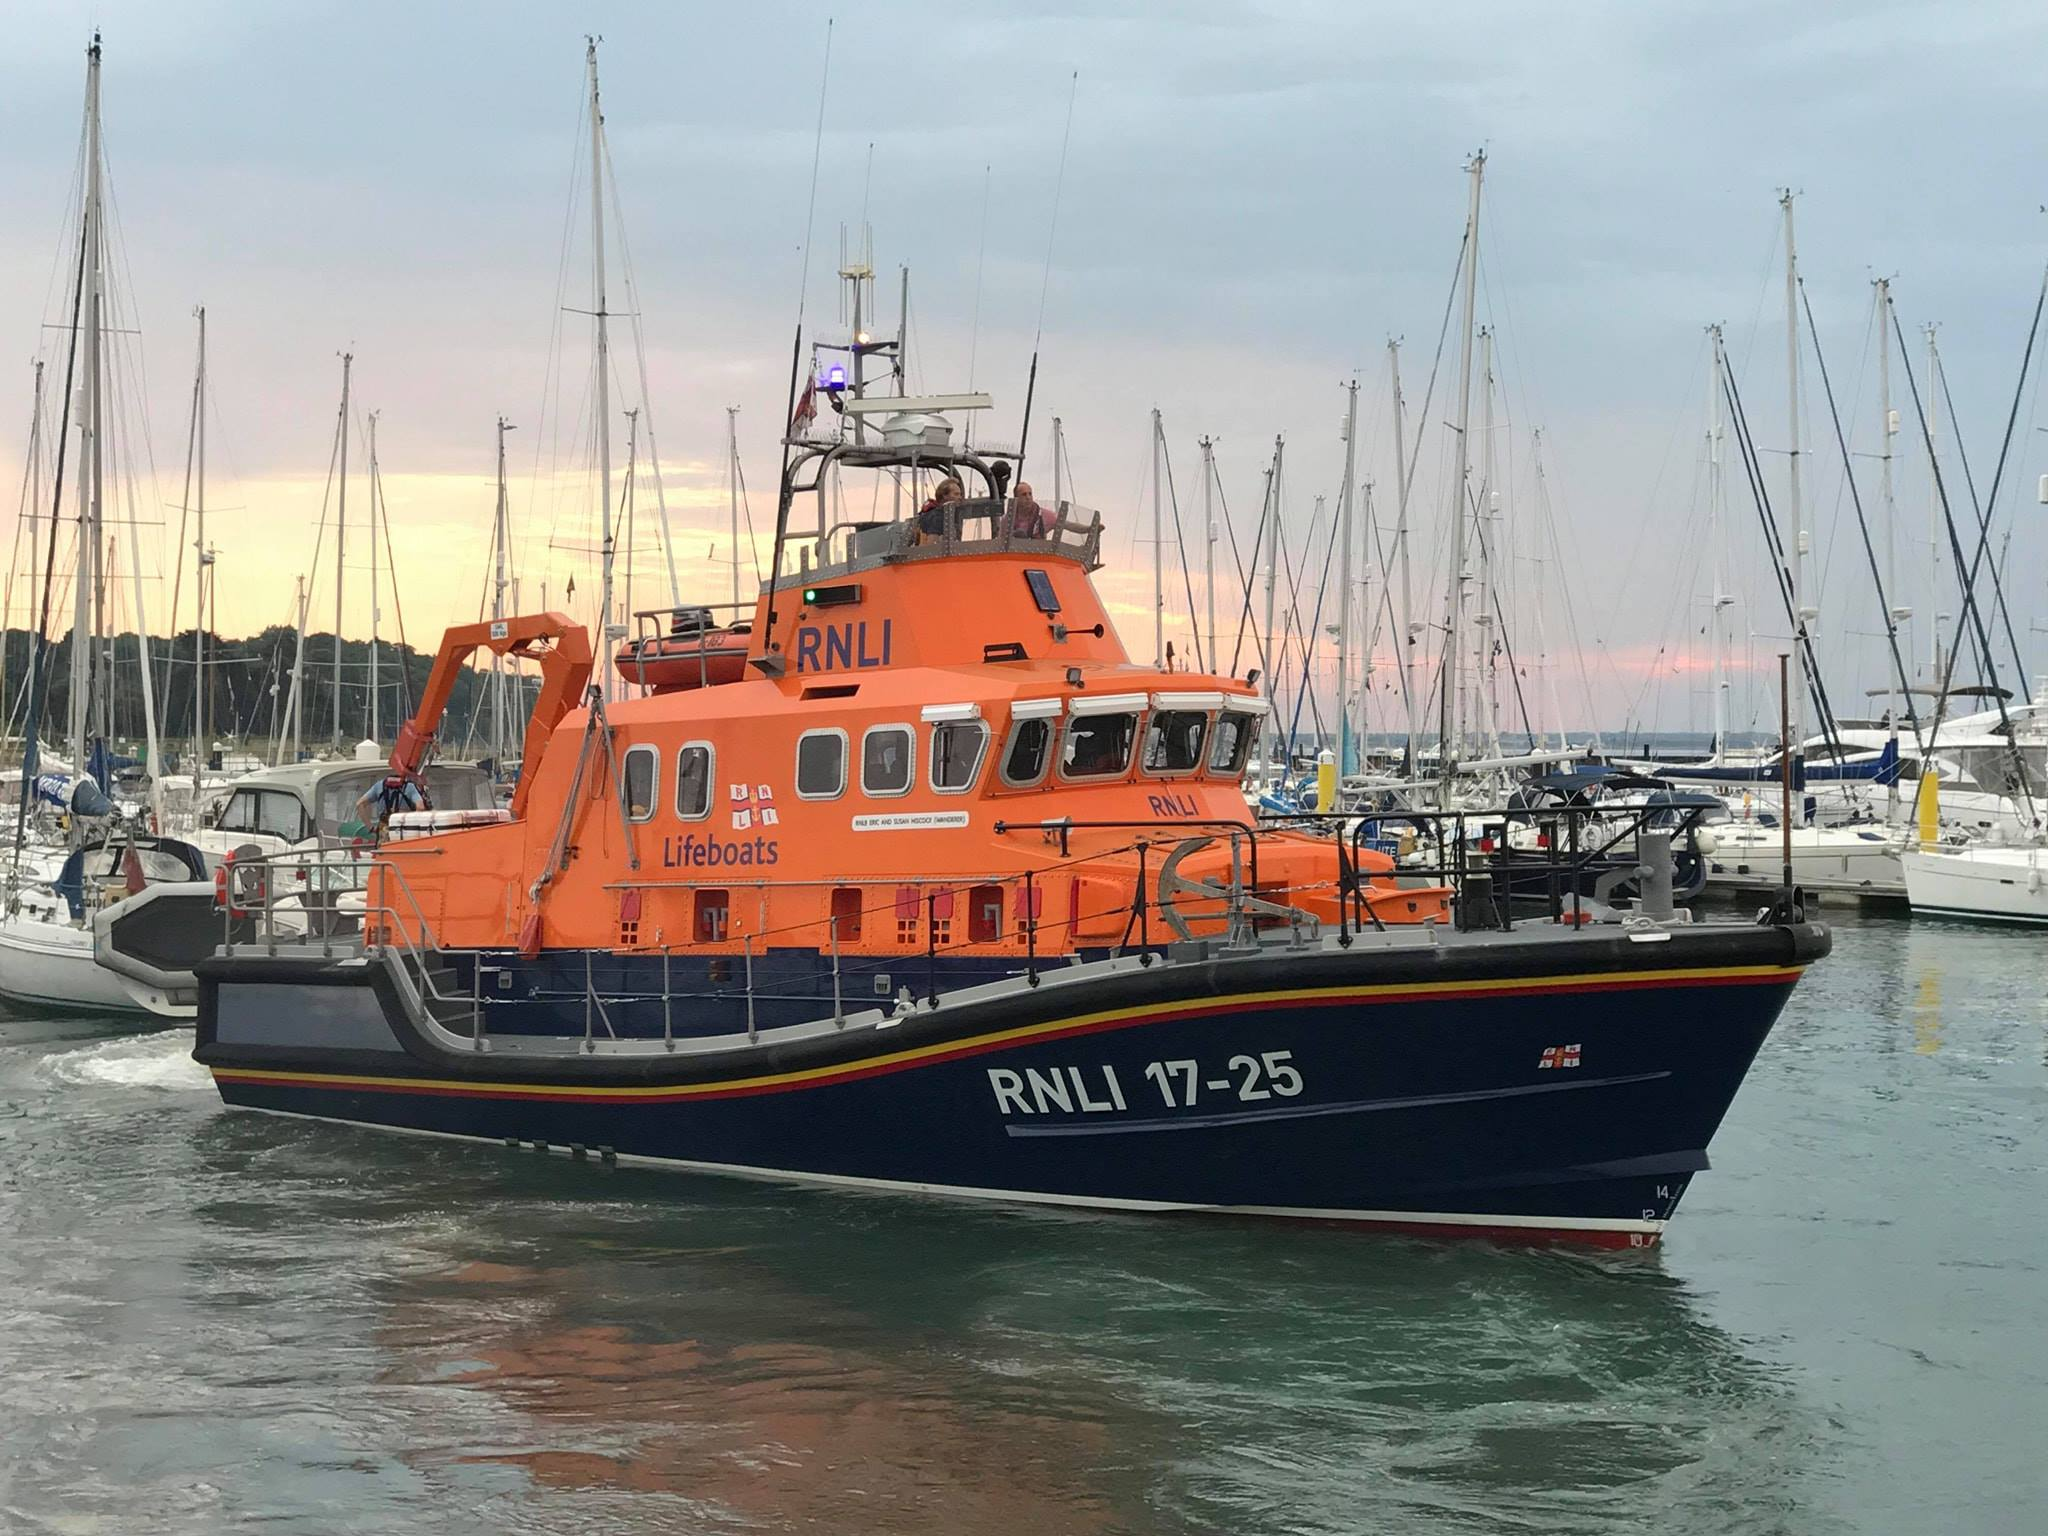 The Yarmouth Lifeboat 'Eric and Susan Hiscock (Wanderer)'